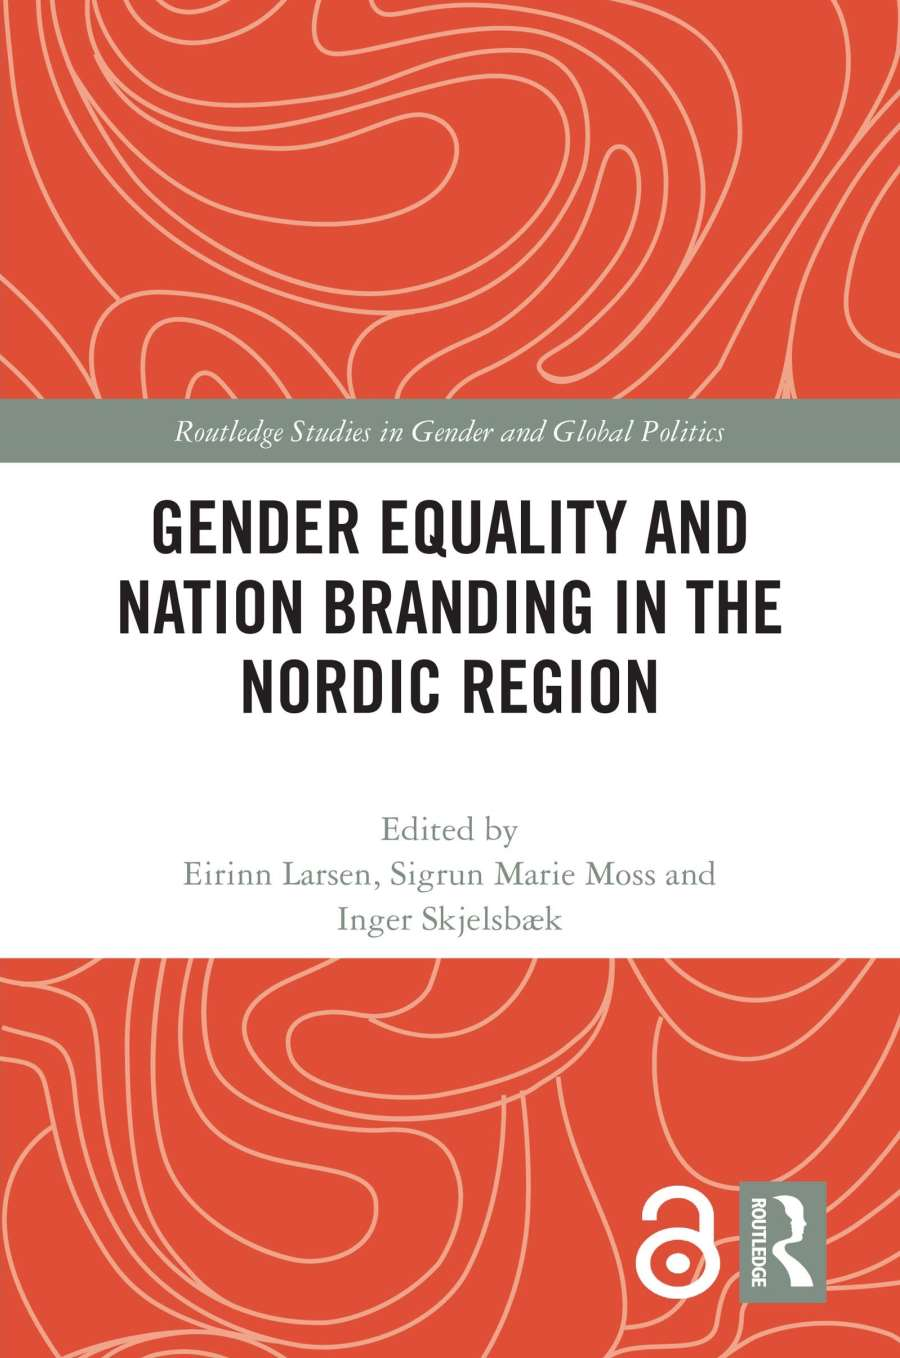 PRIO Researchers Contribute to New Book on Gender Equality and Nation Branding in the Nordic Region